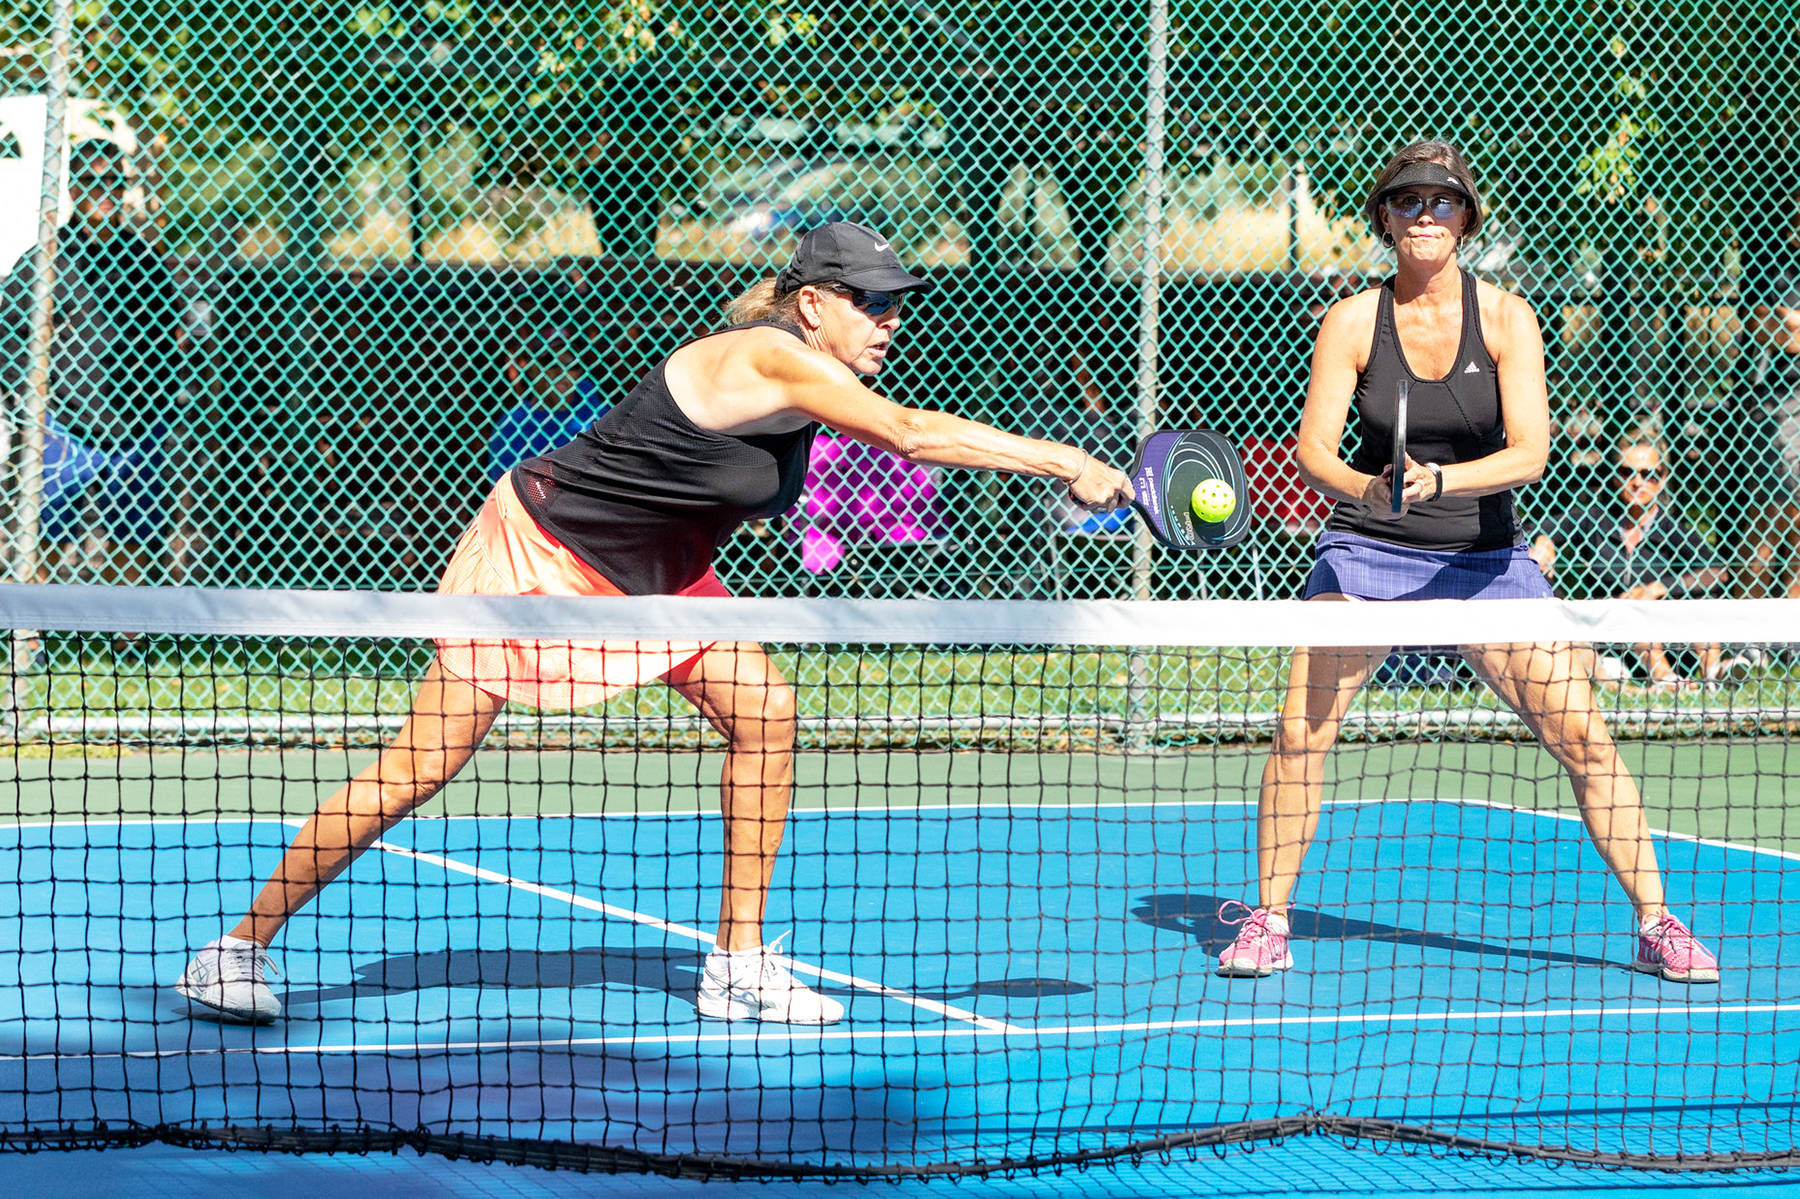 Pickleball action during the 2019 55+ B.C. Games in Kelowna. While the 2020 Games in Richmond were cancelled due to COVID-19, the Greater Victoria organizing committee has begun planning for hosting the 2021 competition next September. (Rosemary Kean/55+ BC Games Society)